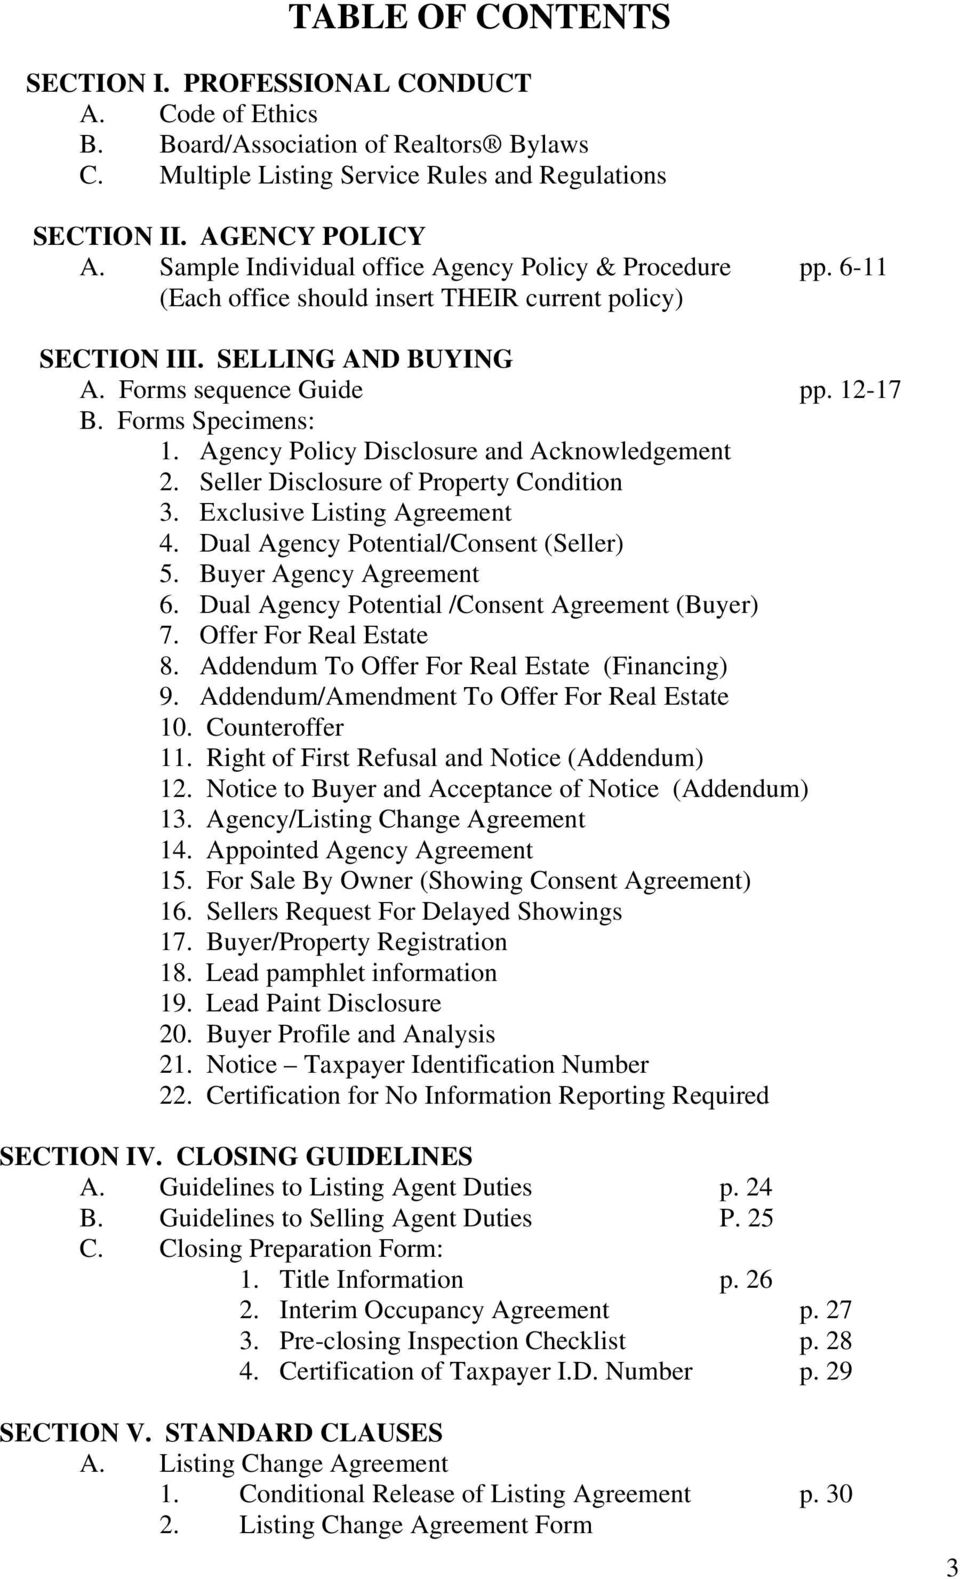 Agency Policy Disclosure and Acknowledgement 2. Seller Disclosure of Property Condition 3. Exclusive Listing Agreement 4. Dual Agency Potential/Consent (Seller) 5. Buyer Agency Agreement 6.